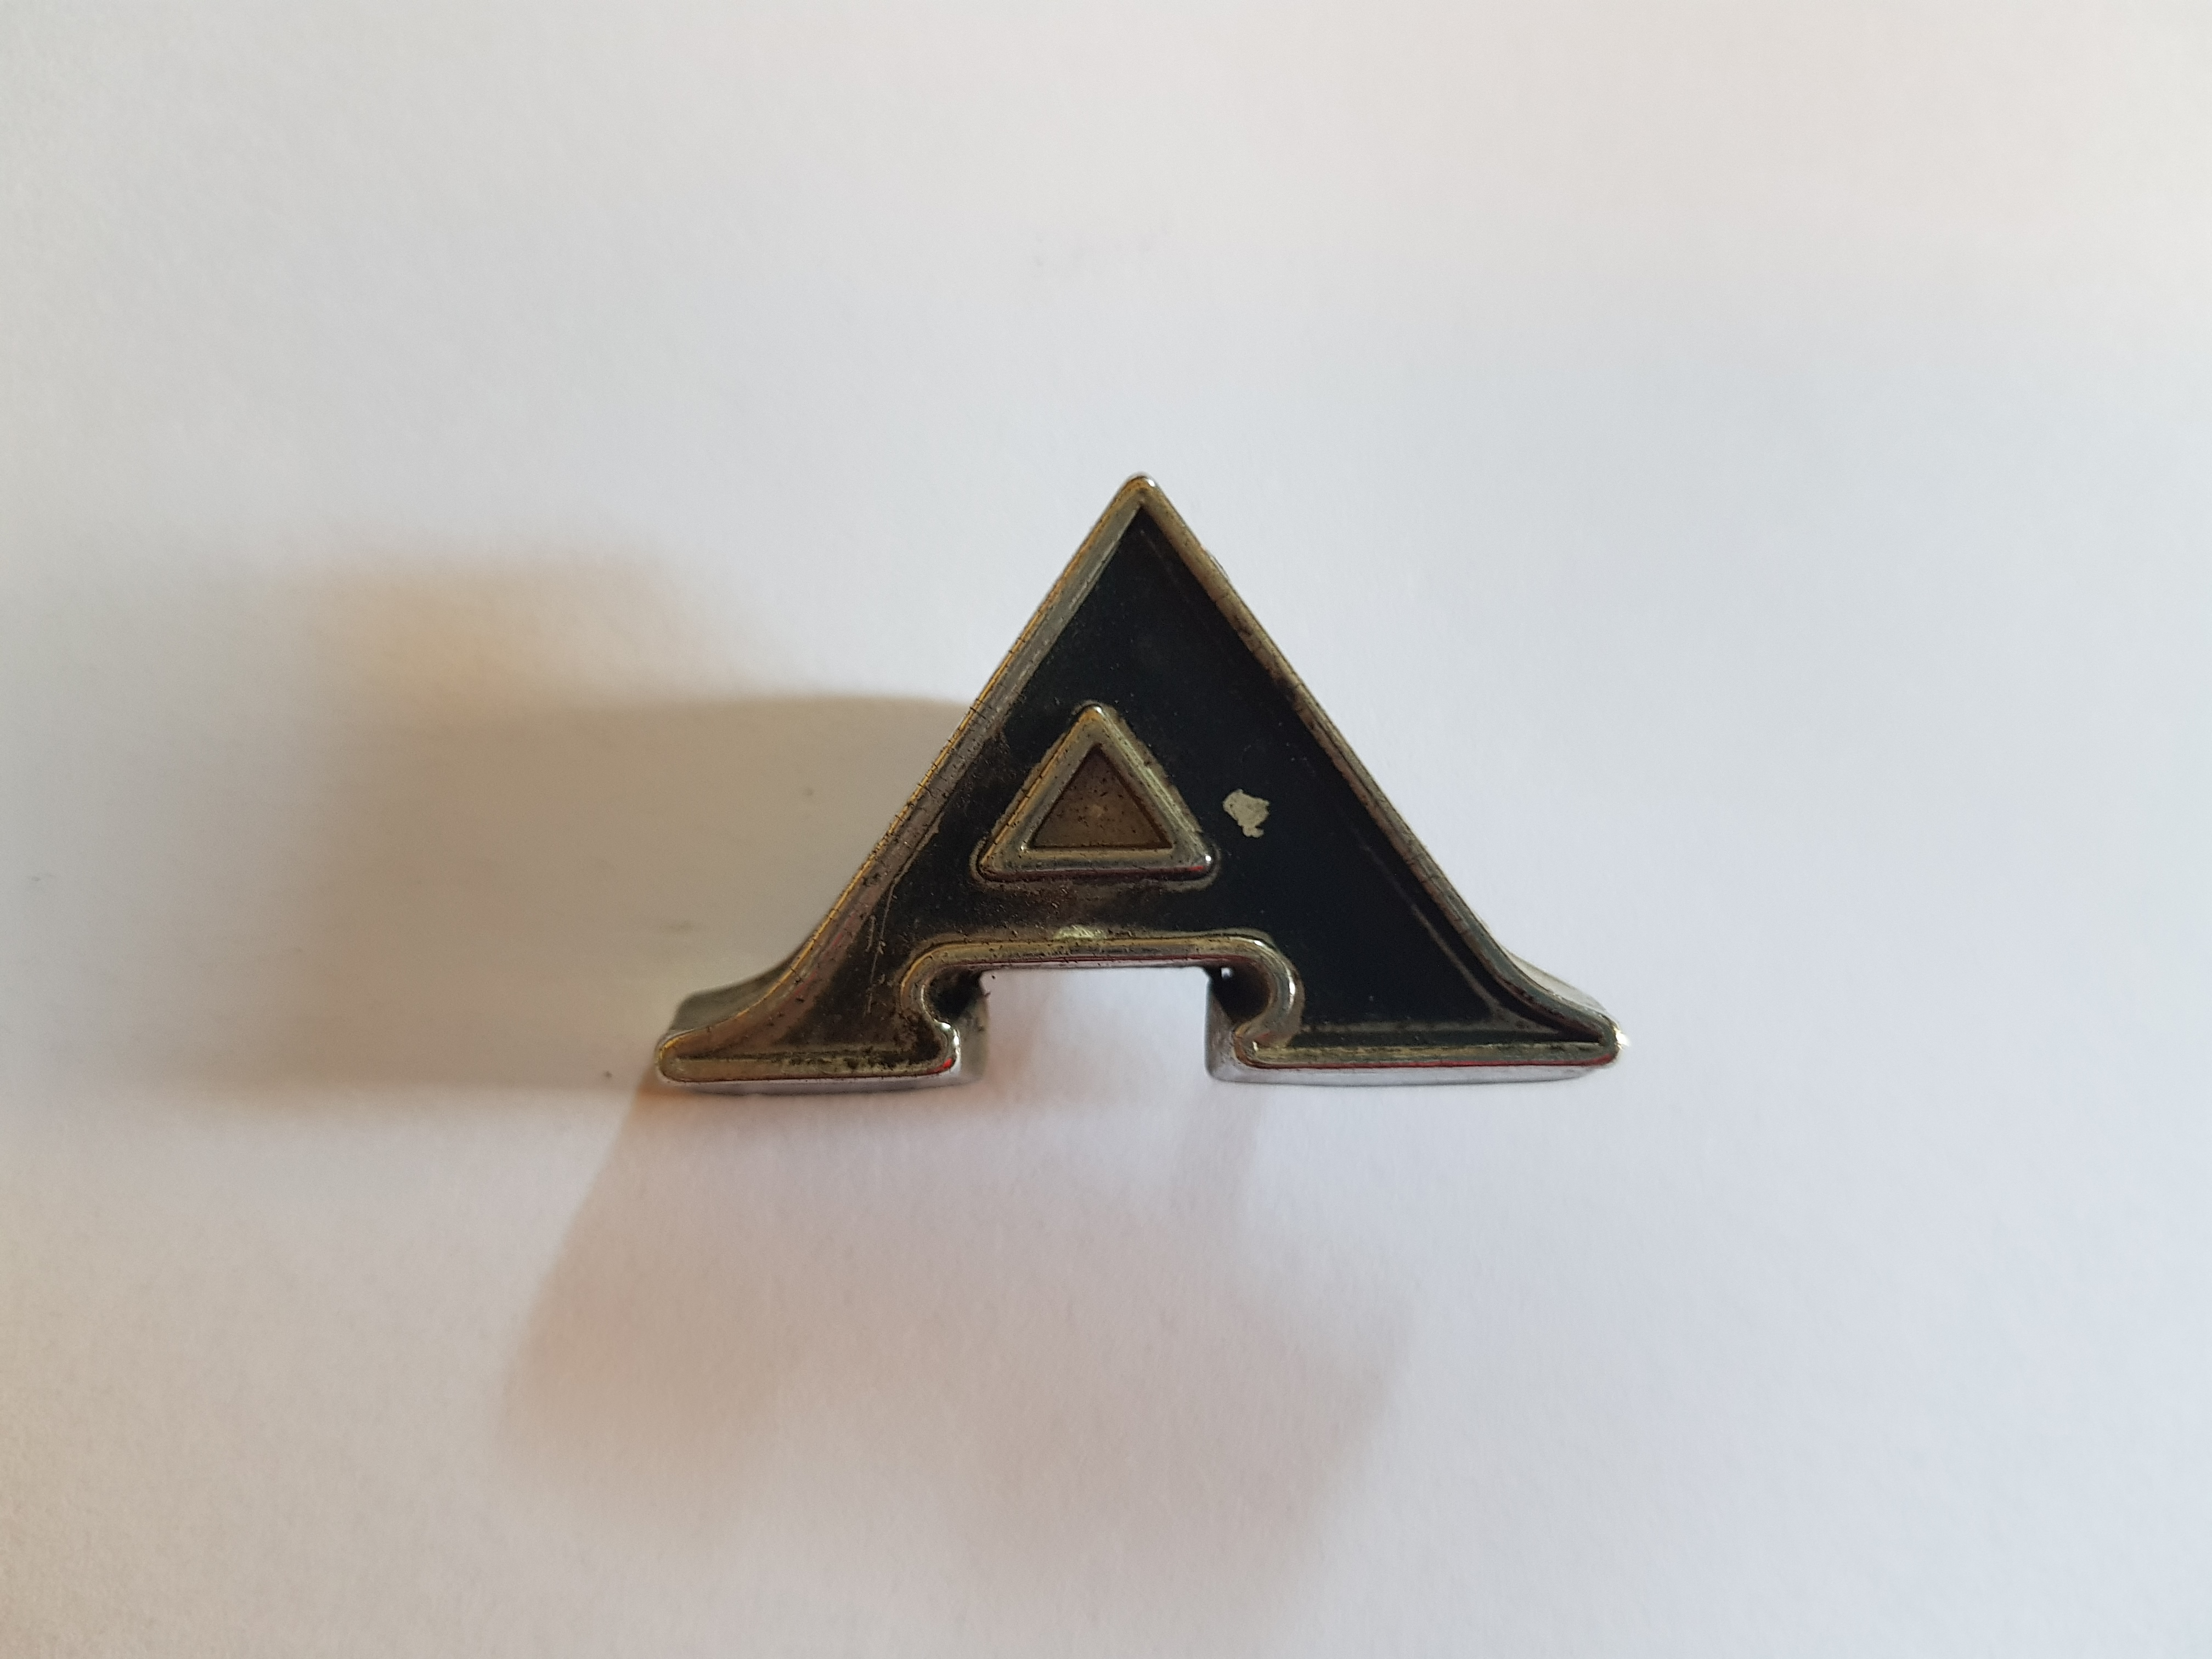 'A' Boot Letter Badge, Salvaged